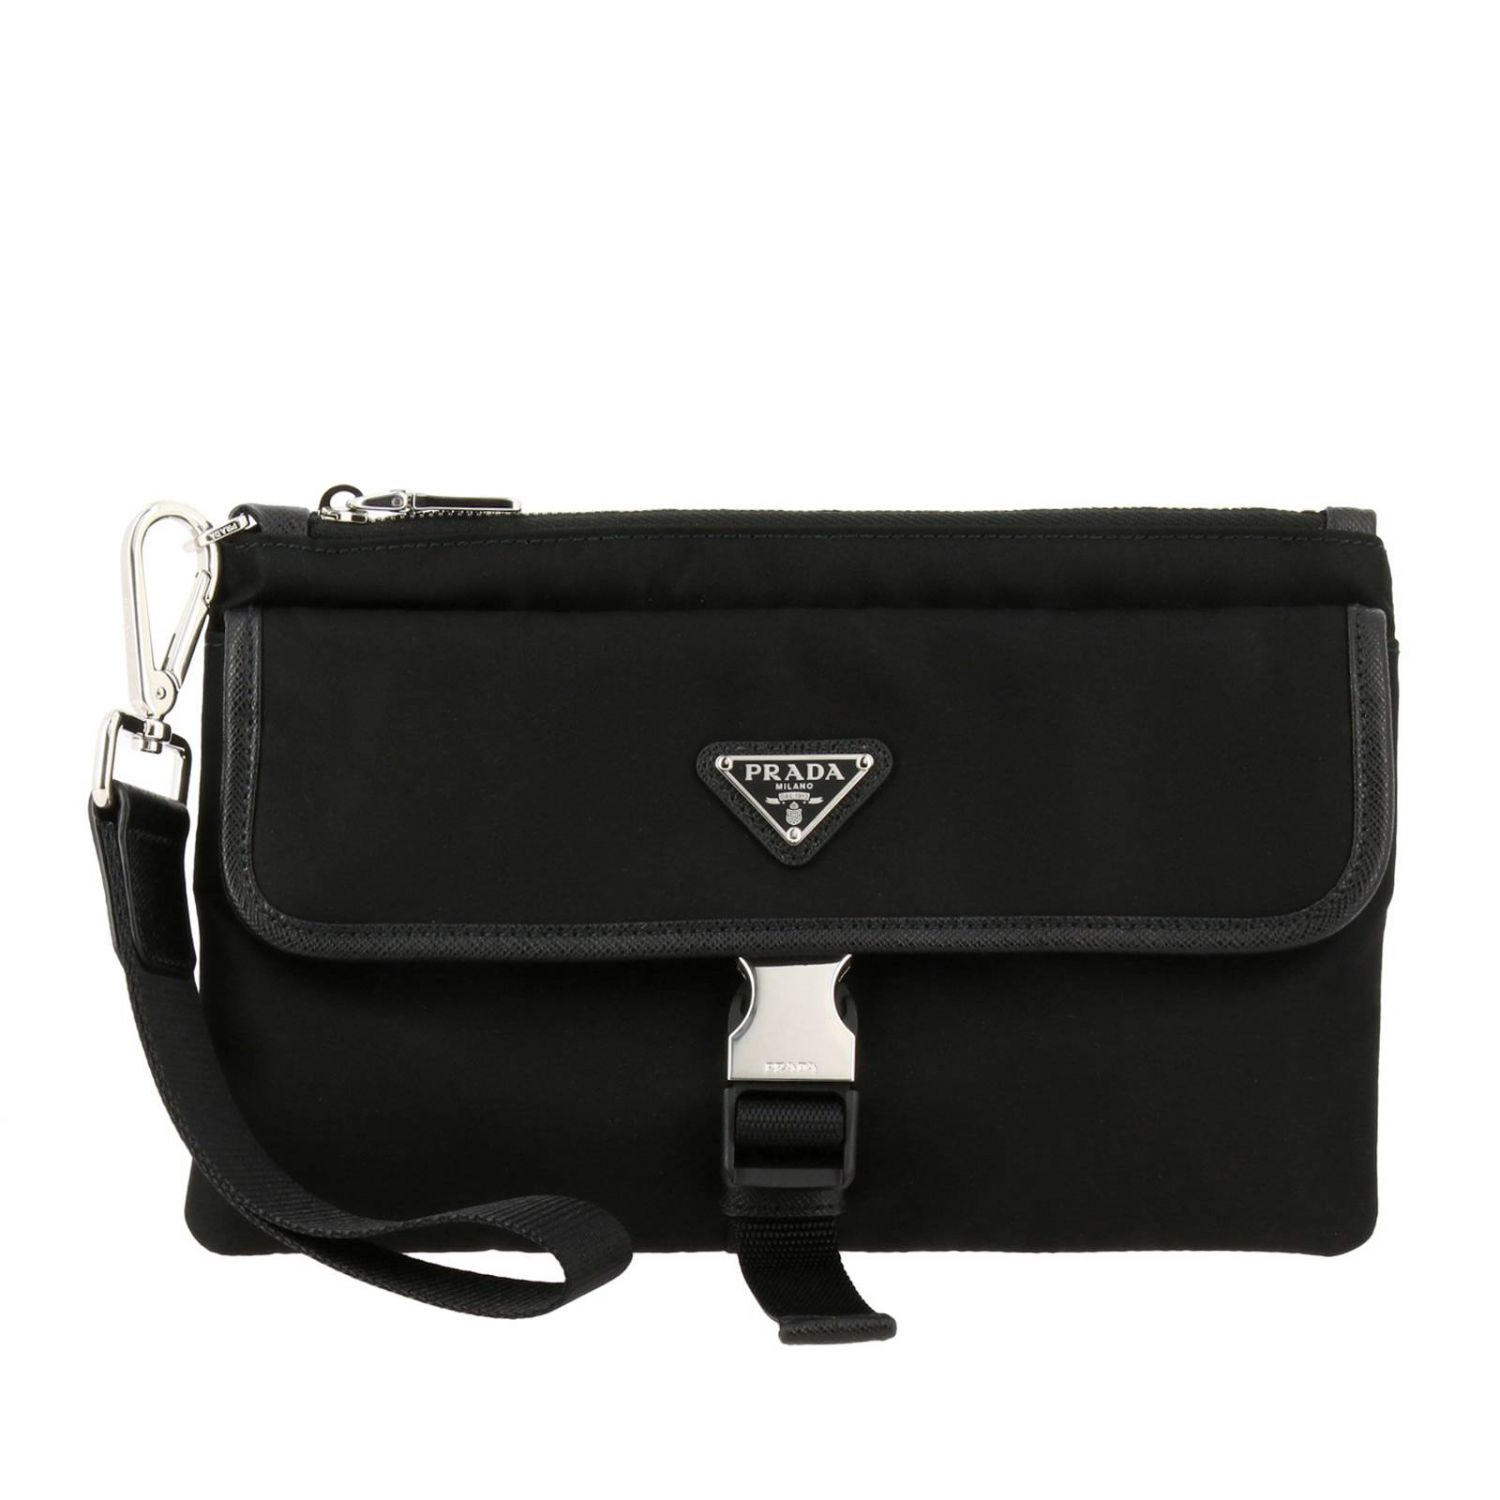 Prada nylon clutch bag with triangular logo and buckle black 1